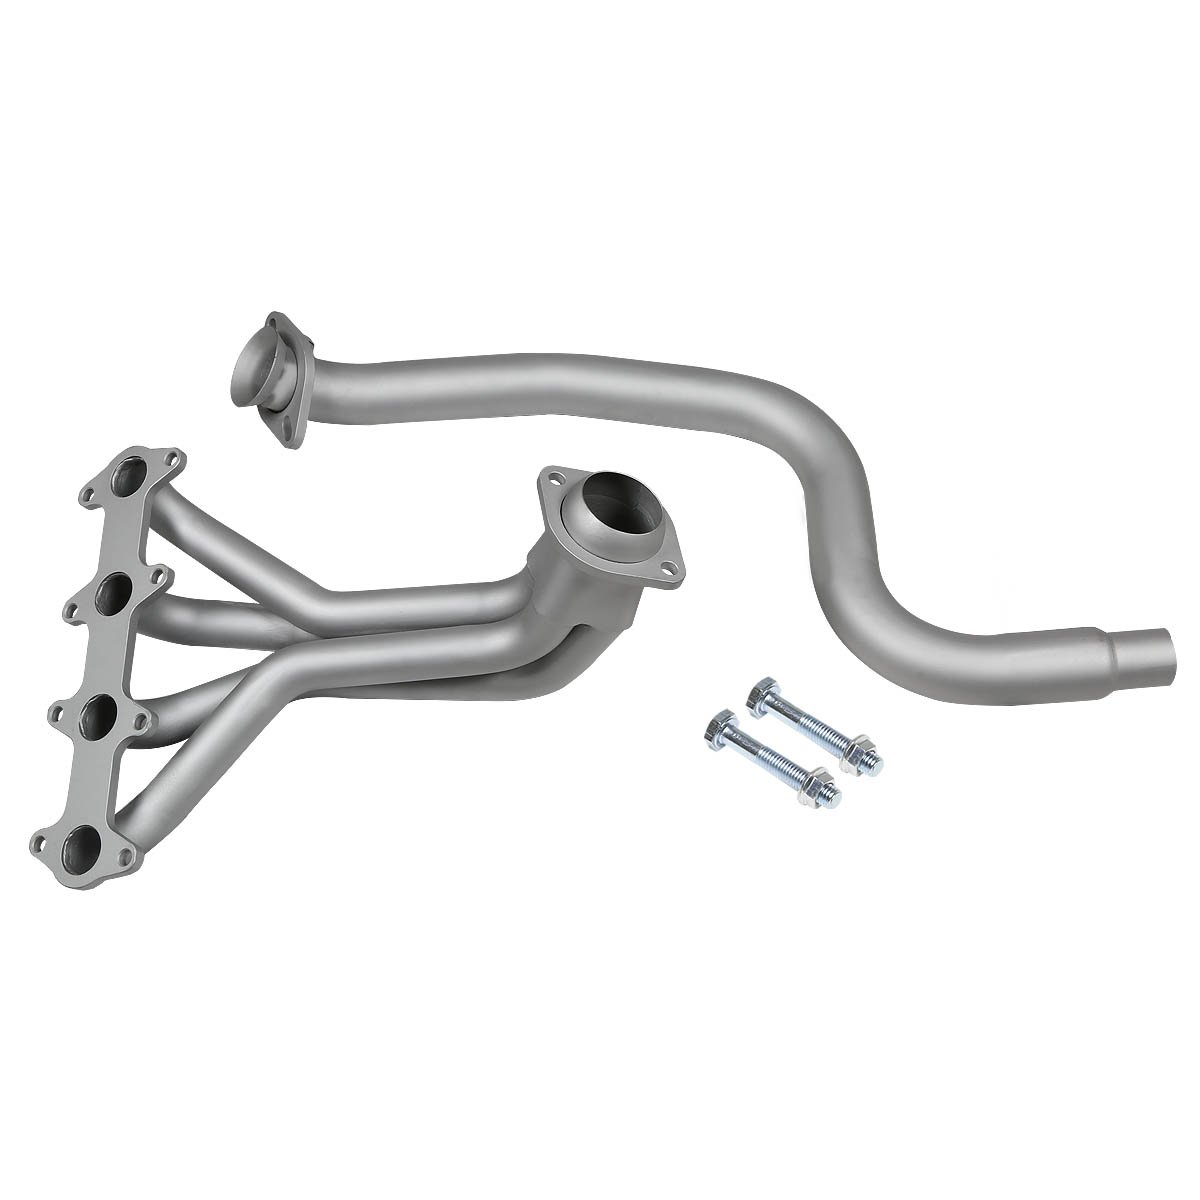 For Chevy Cavalier//Pontiac Sunfire 2.2L LN2 4-1 Stainless Steel Header//Exhaust Manifold Silver